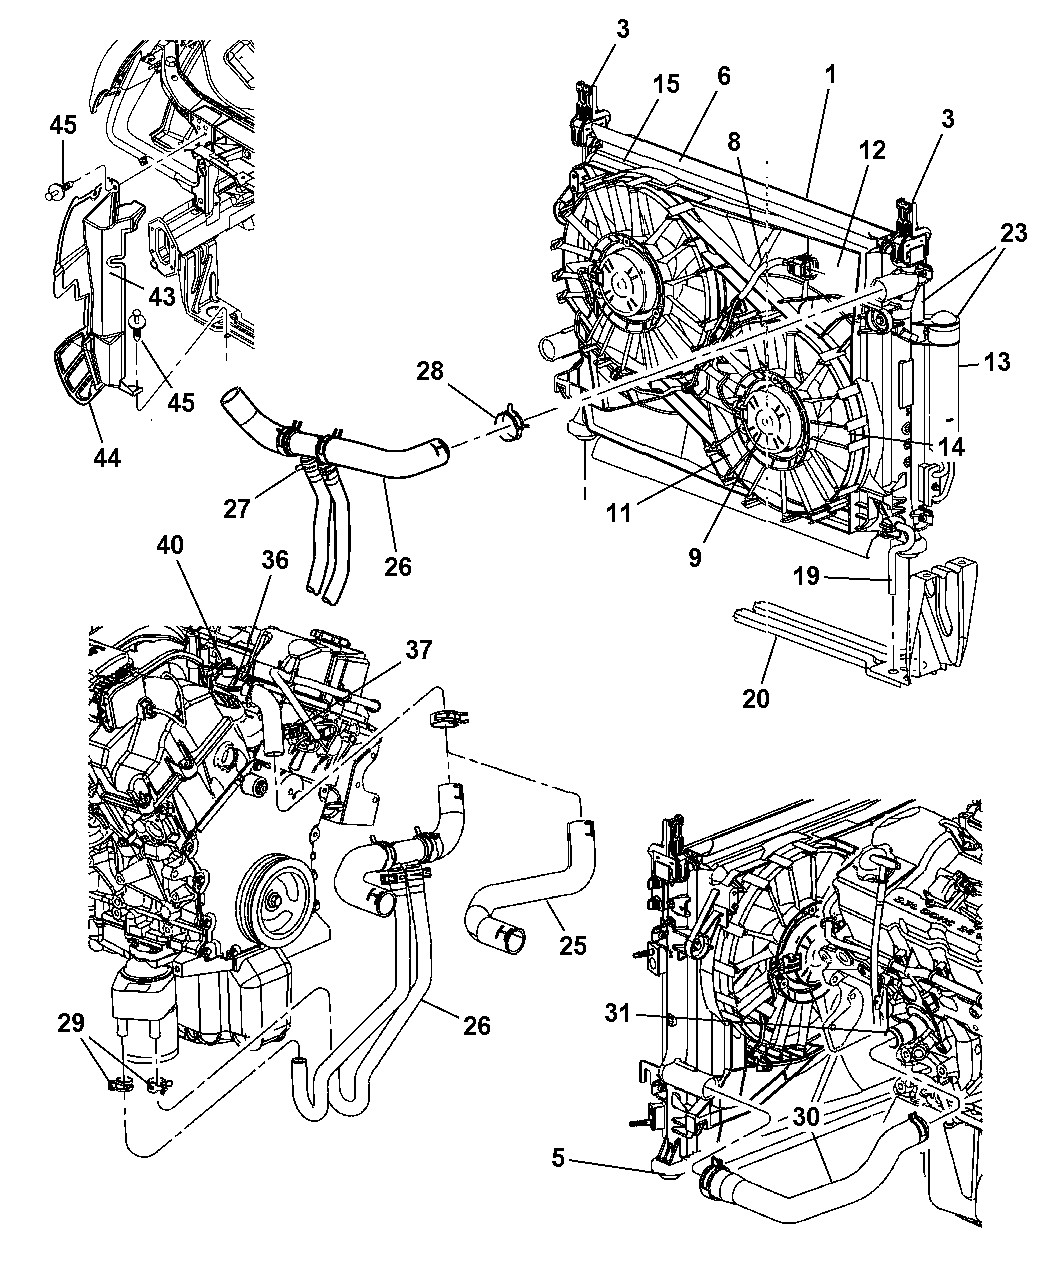 engine diagram 2015 chrysler 200 2 4l  chrysler  auto